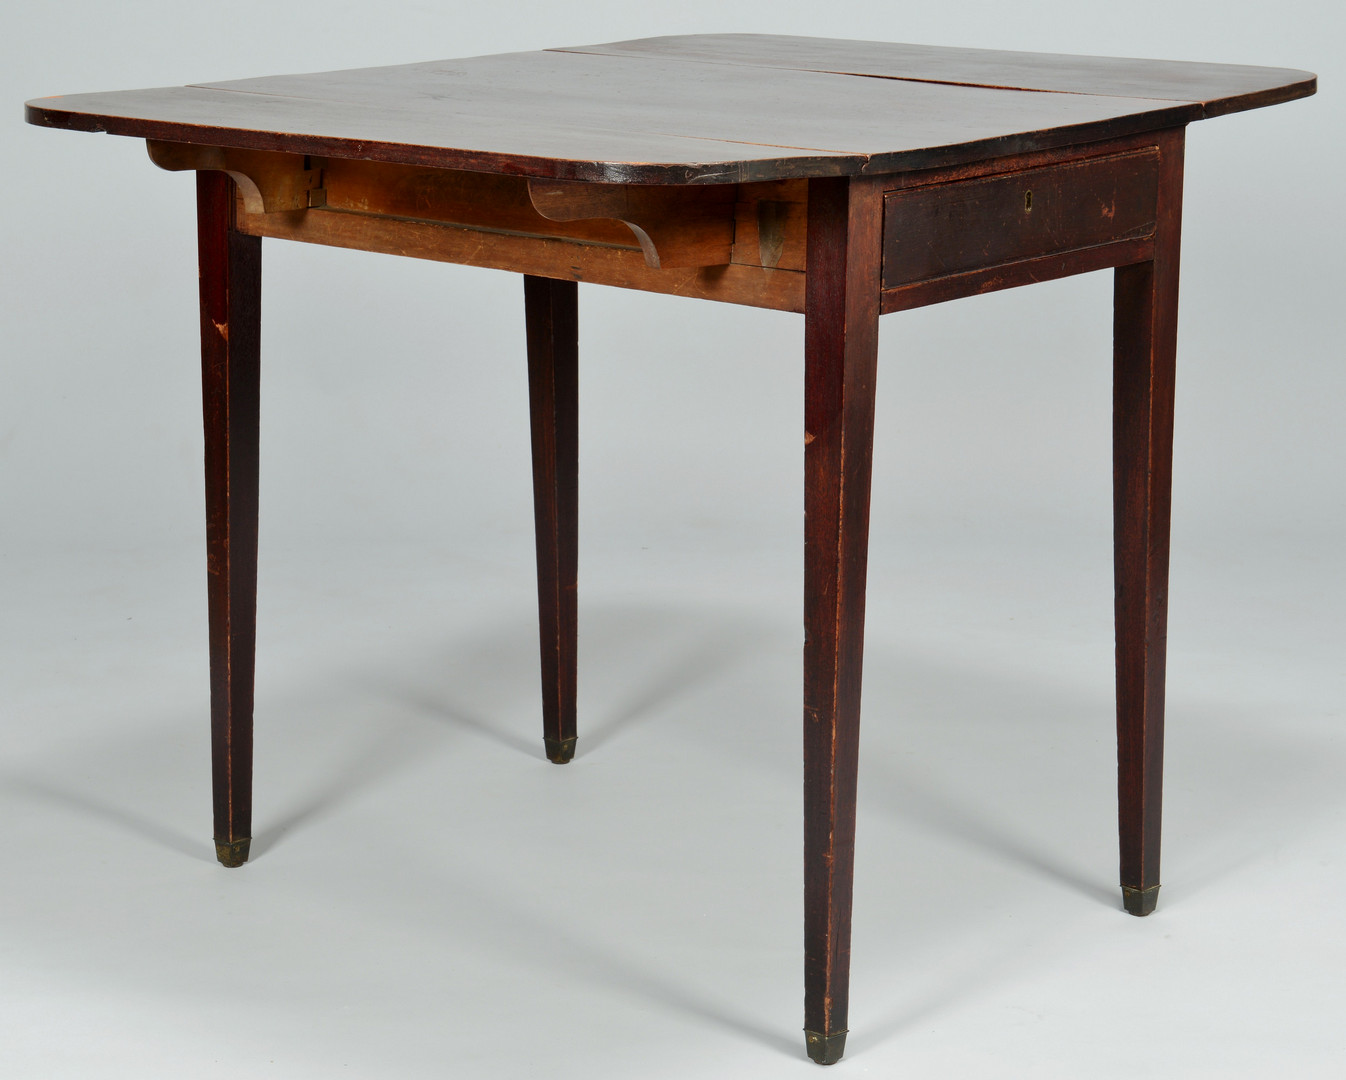 Lot 382: Pembroke Table, Original Surface